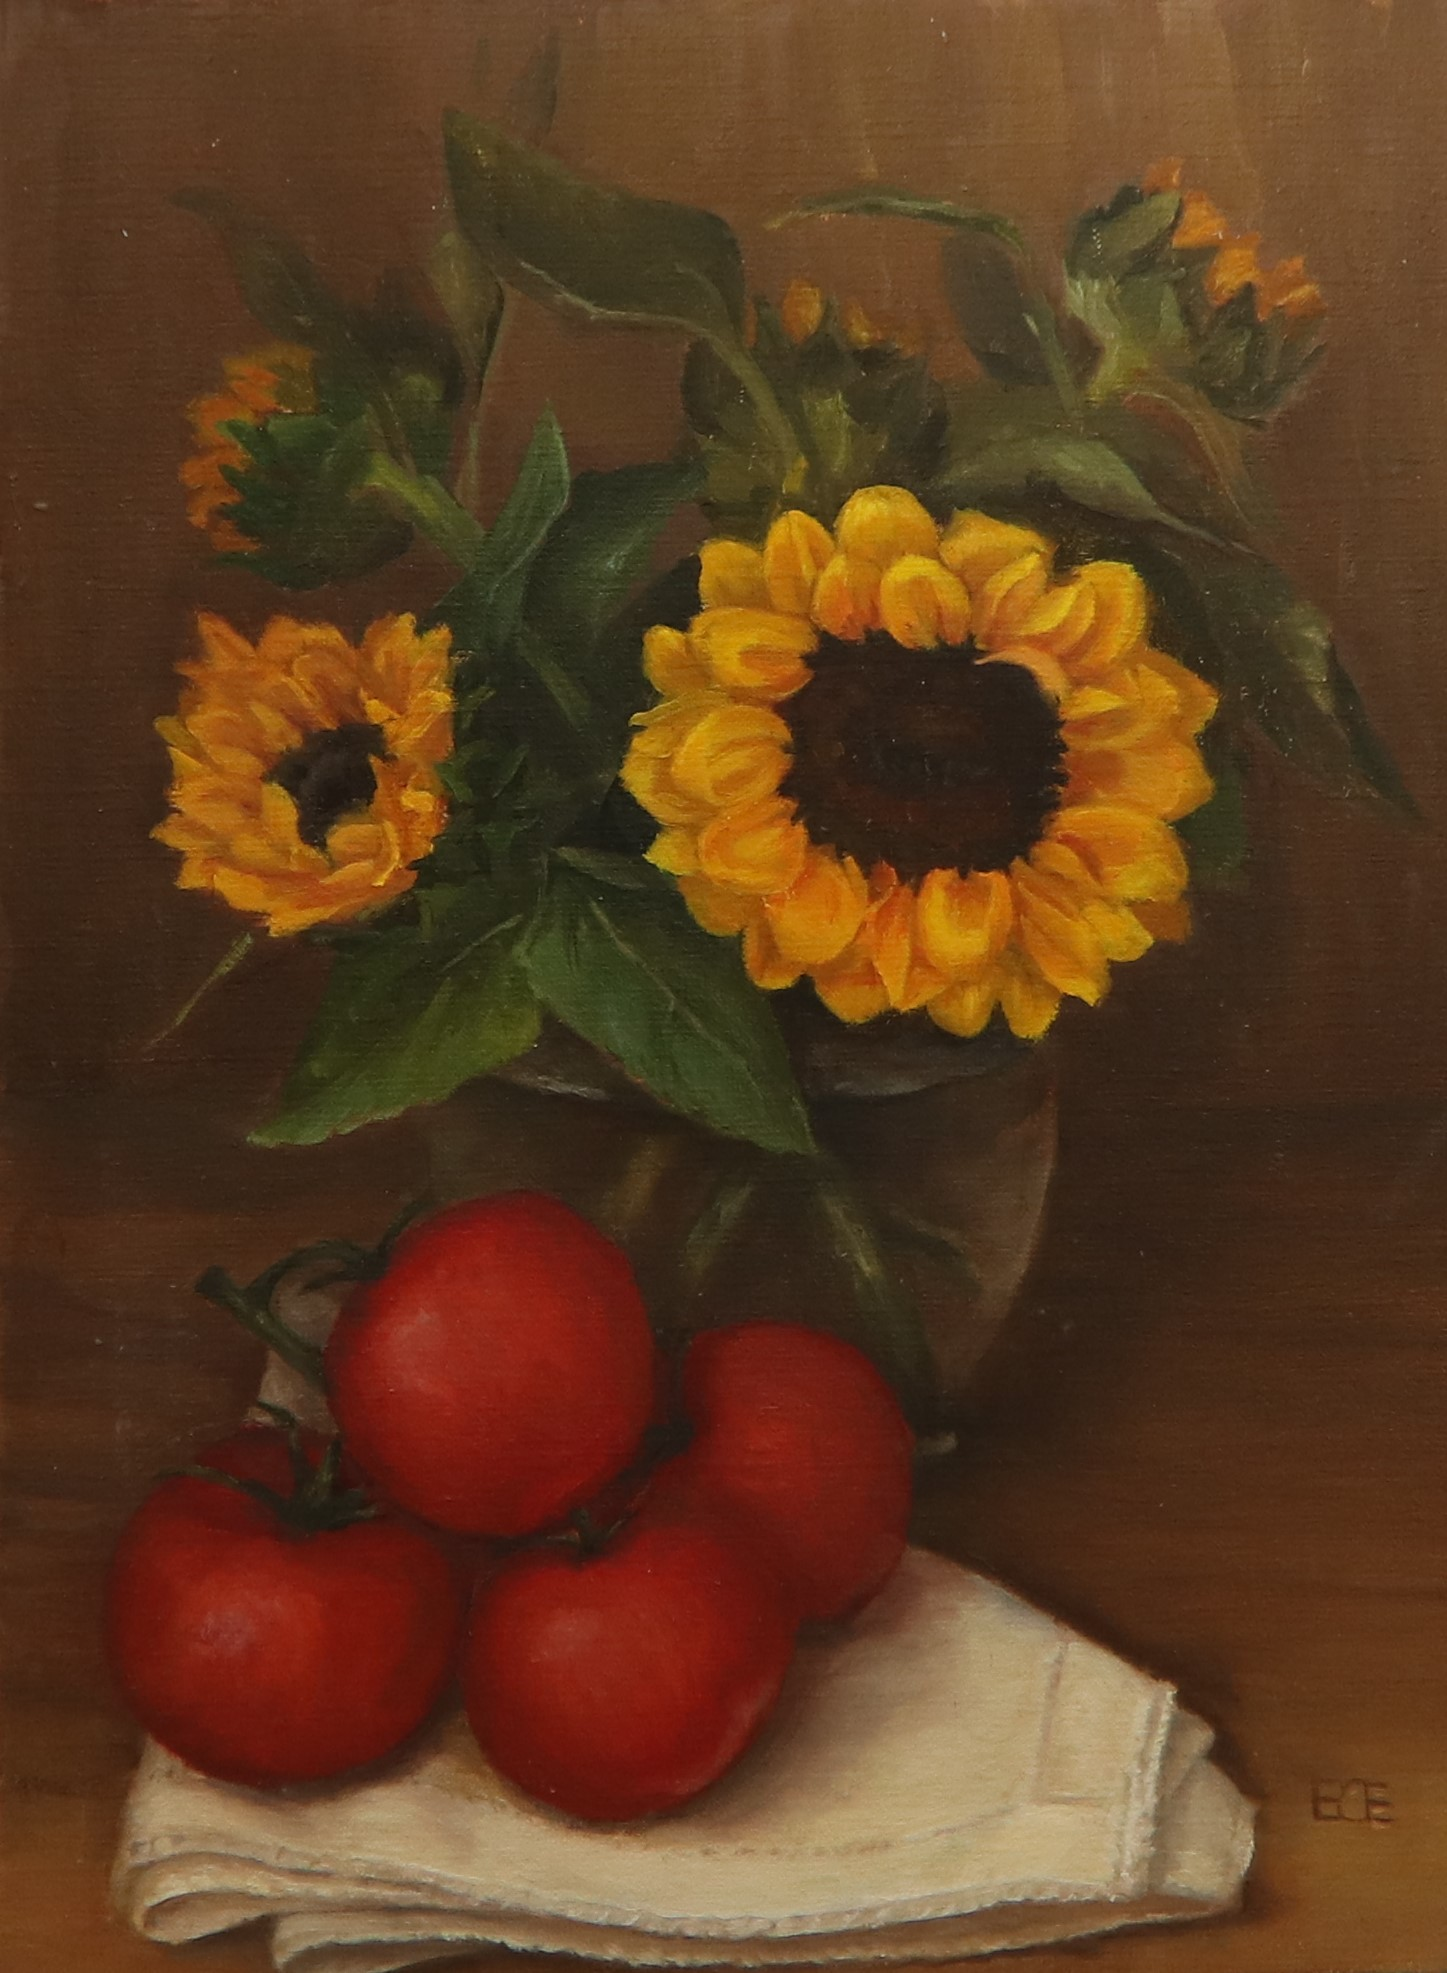 Sunflowers_and_tomatos81260.jpg